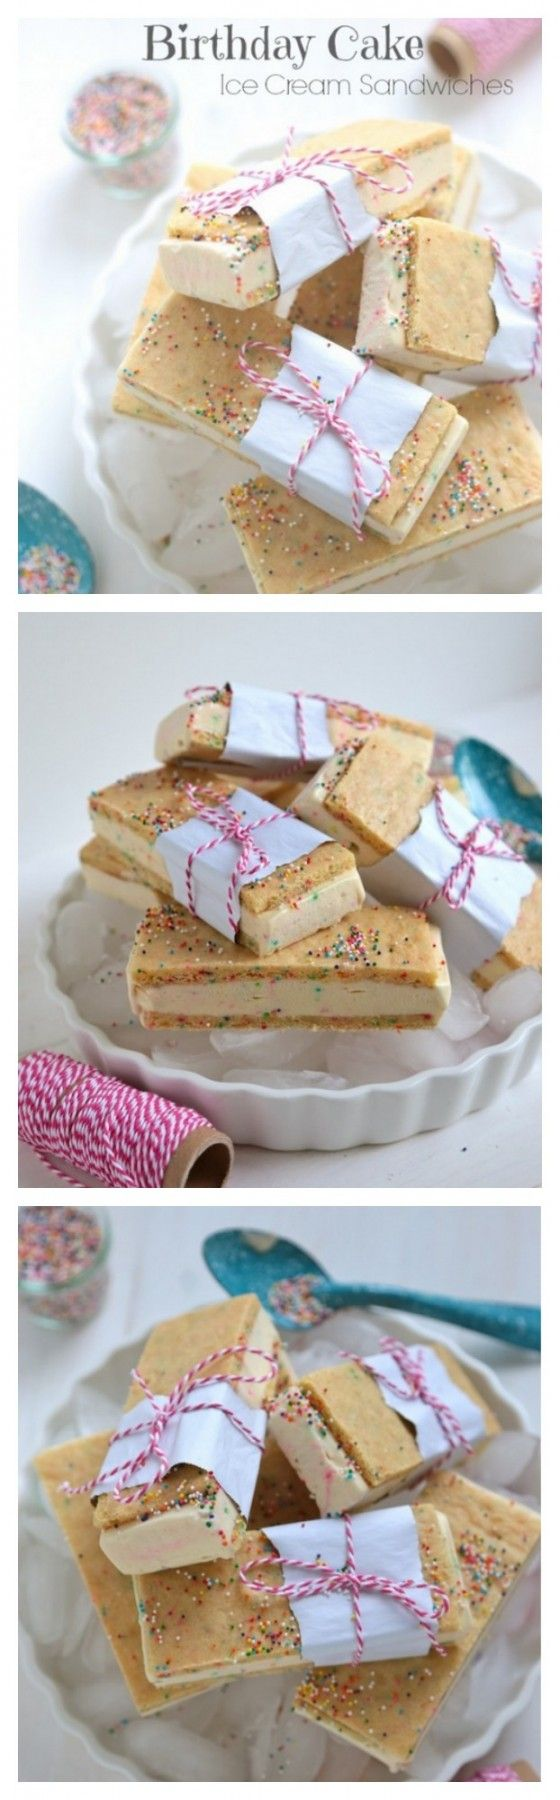 Birthday Cake Ice Cream Sandwich Image Inspiration of Cake and